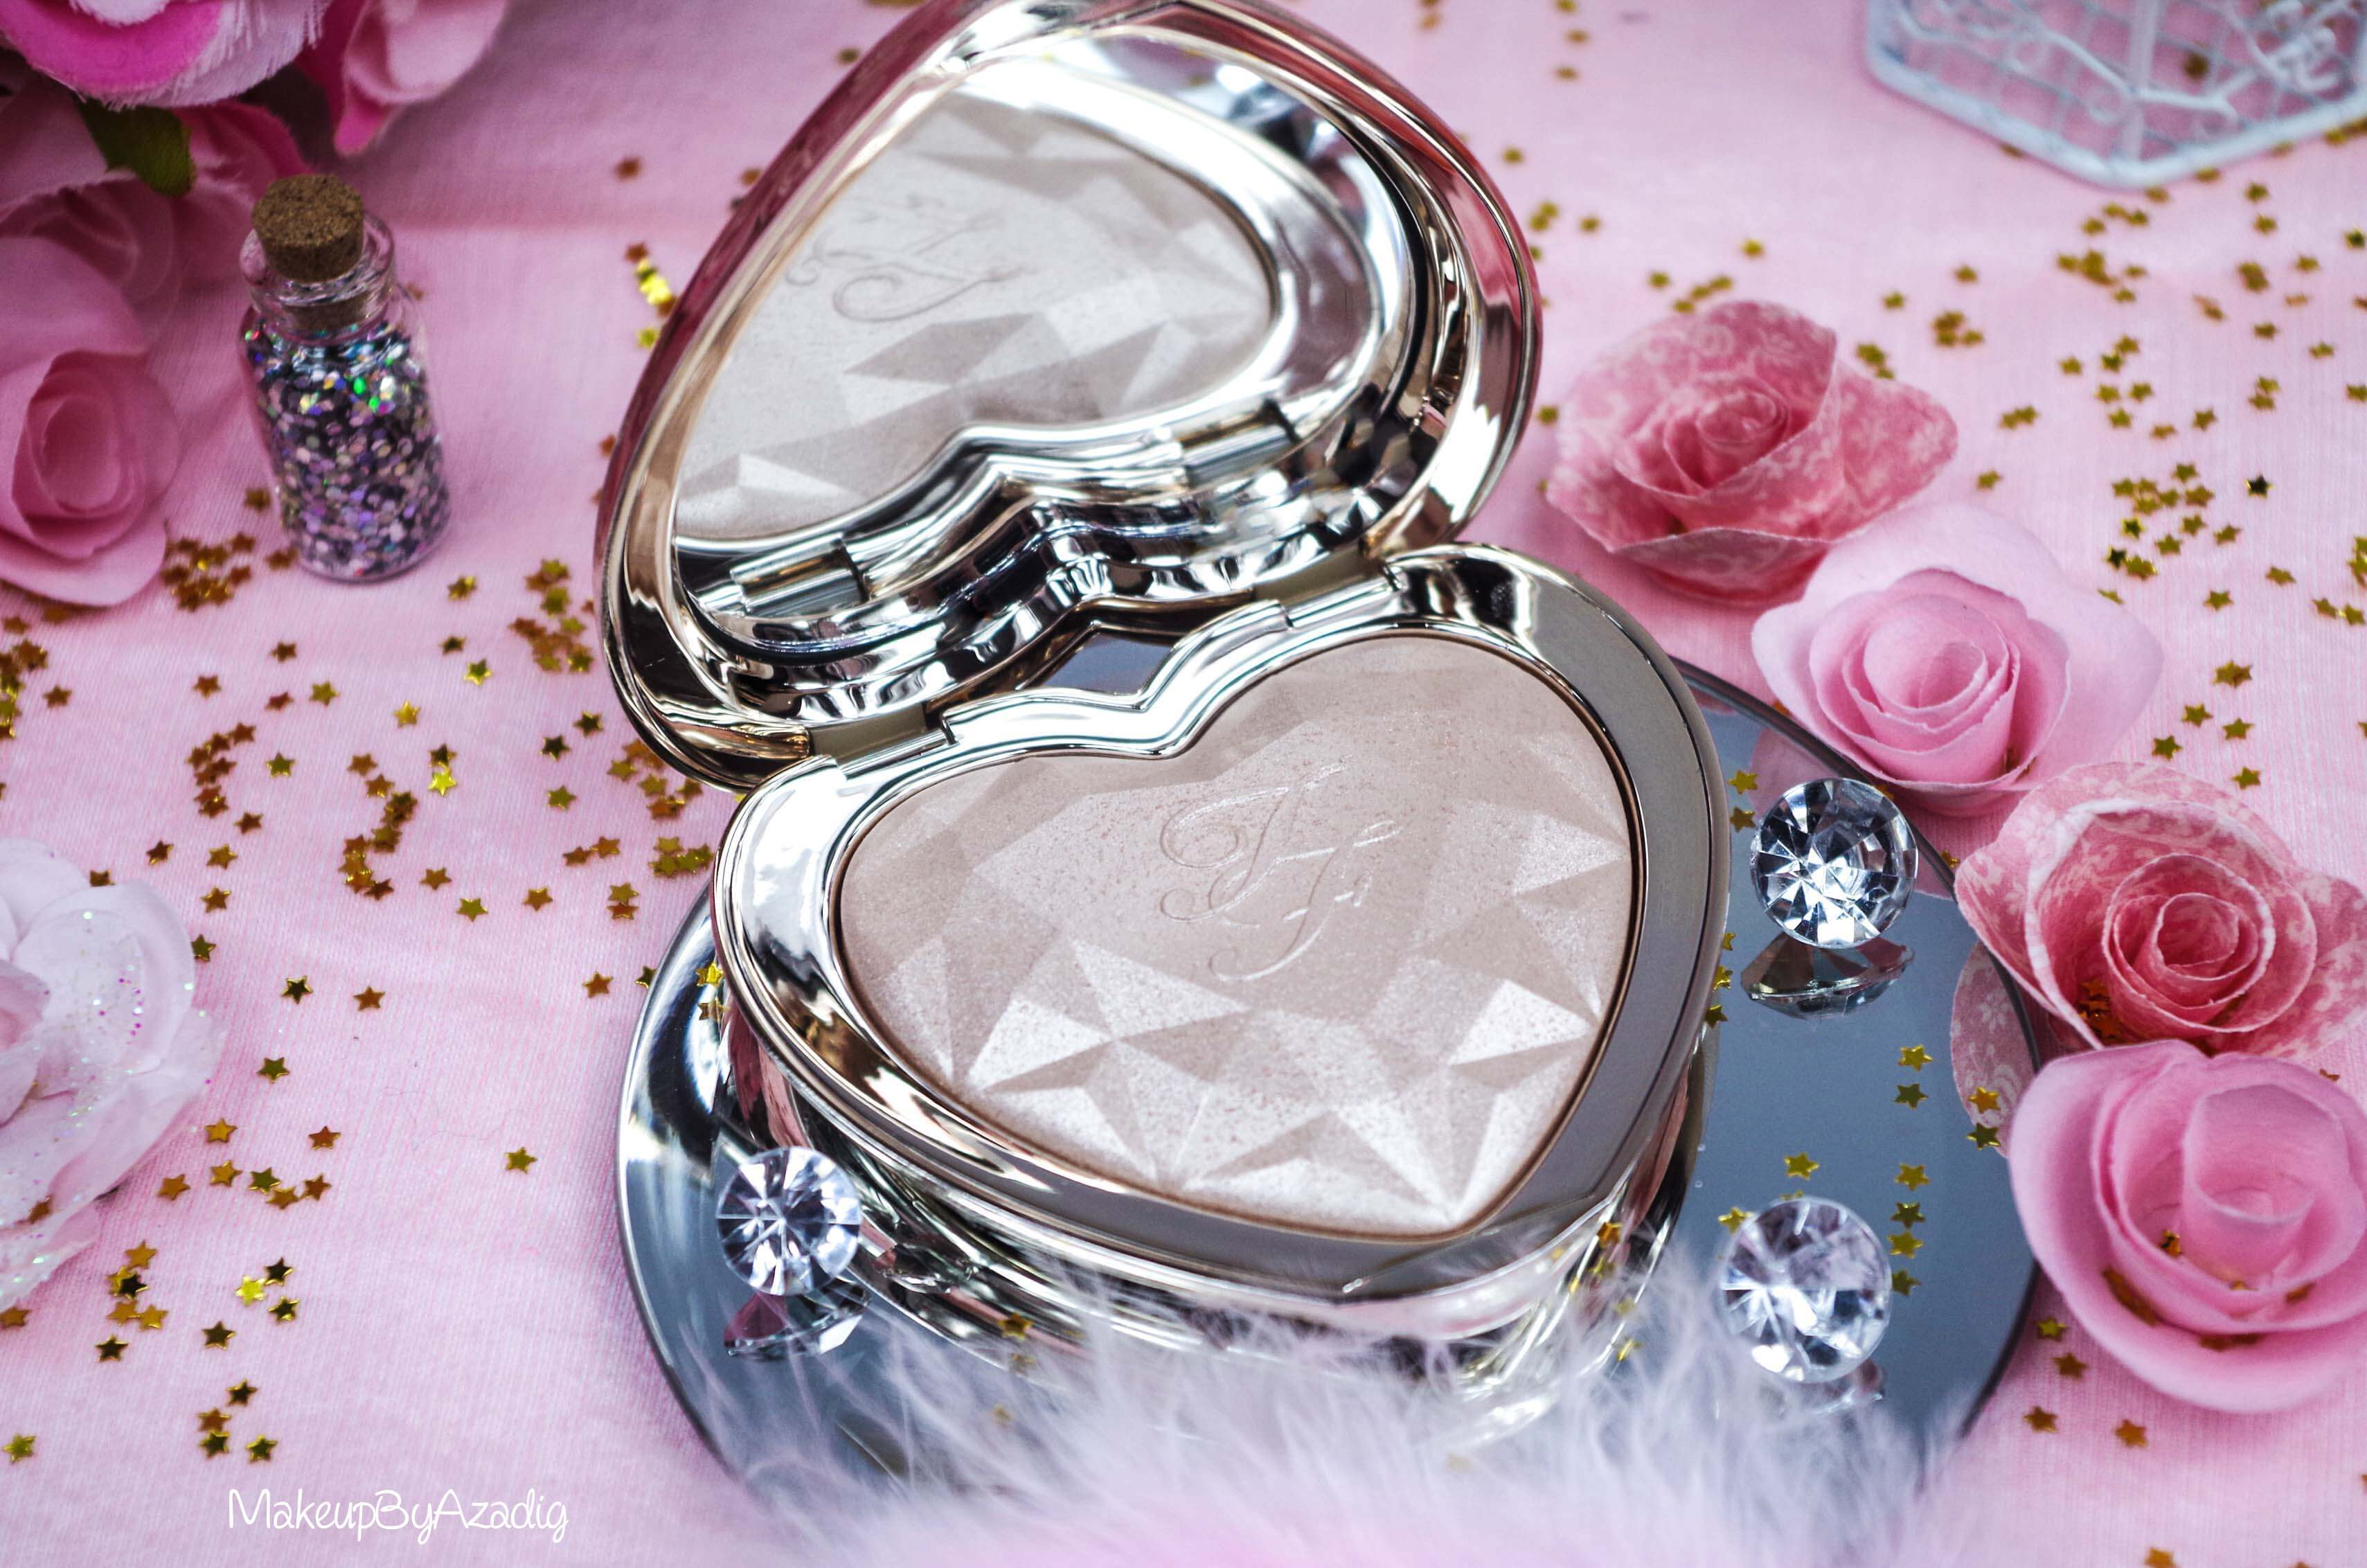 revue-review-highlighter-love-light-too-faced-coeur-avis-prix-sephora-makeupbyazadig-blogger